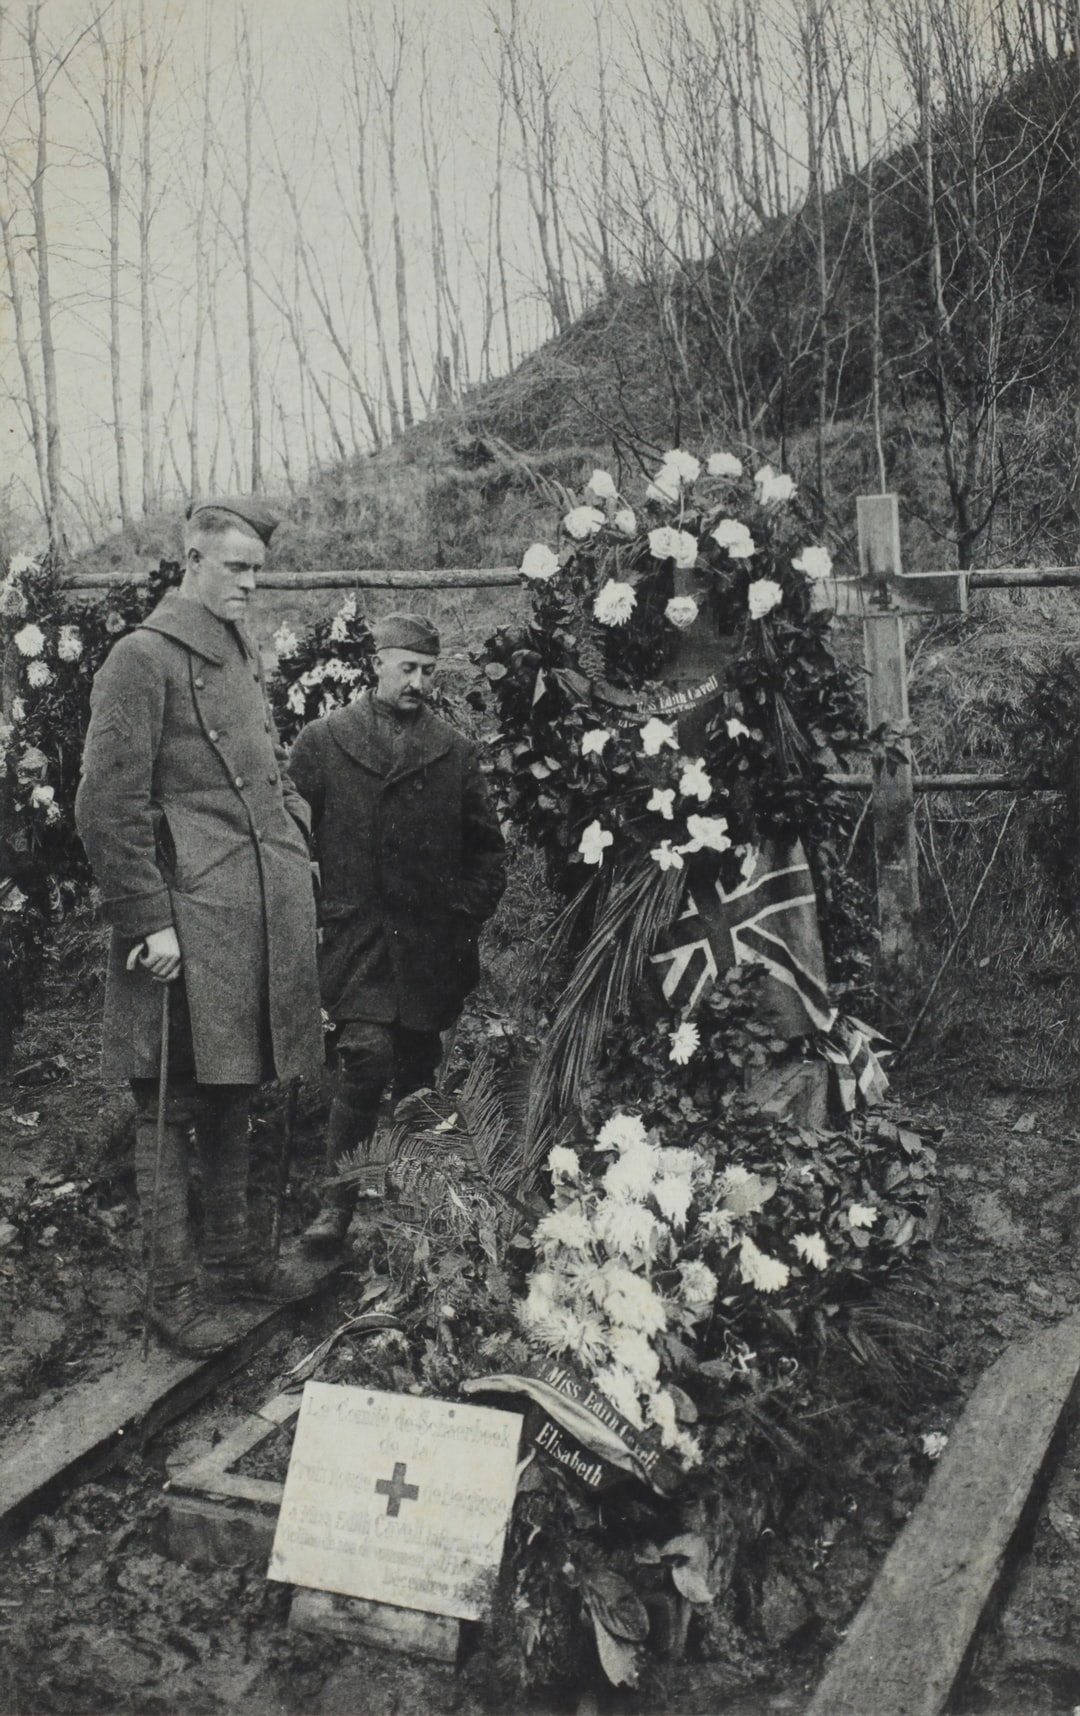 Grave of Miss Edith Cavell, Brussels, Belgium, World War I, 1915-1918